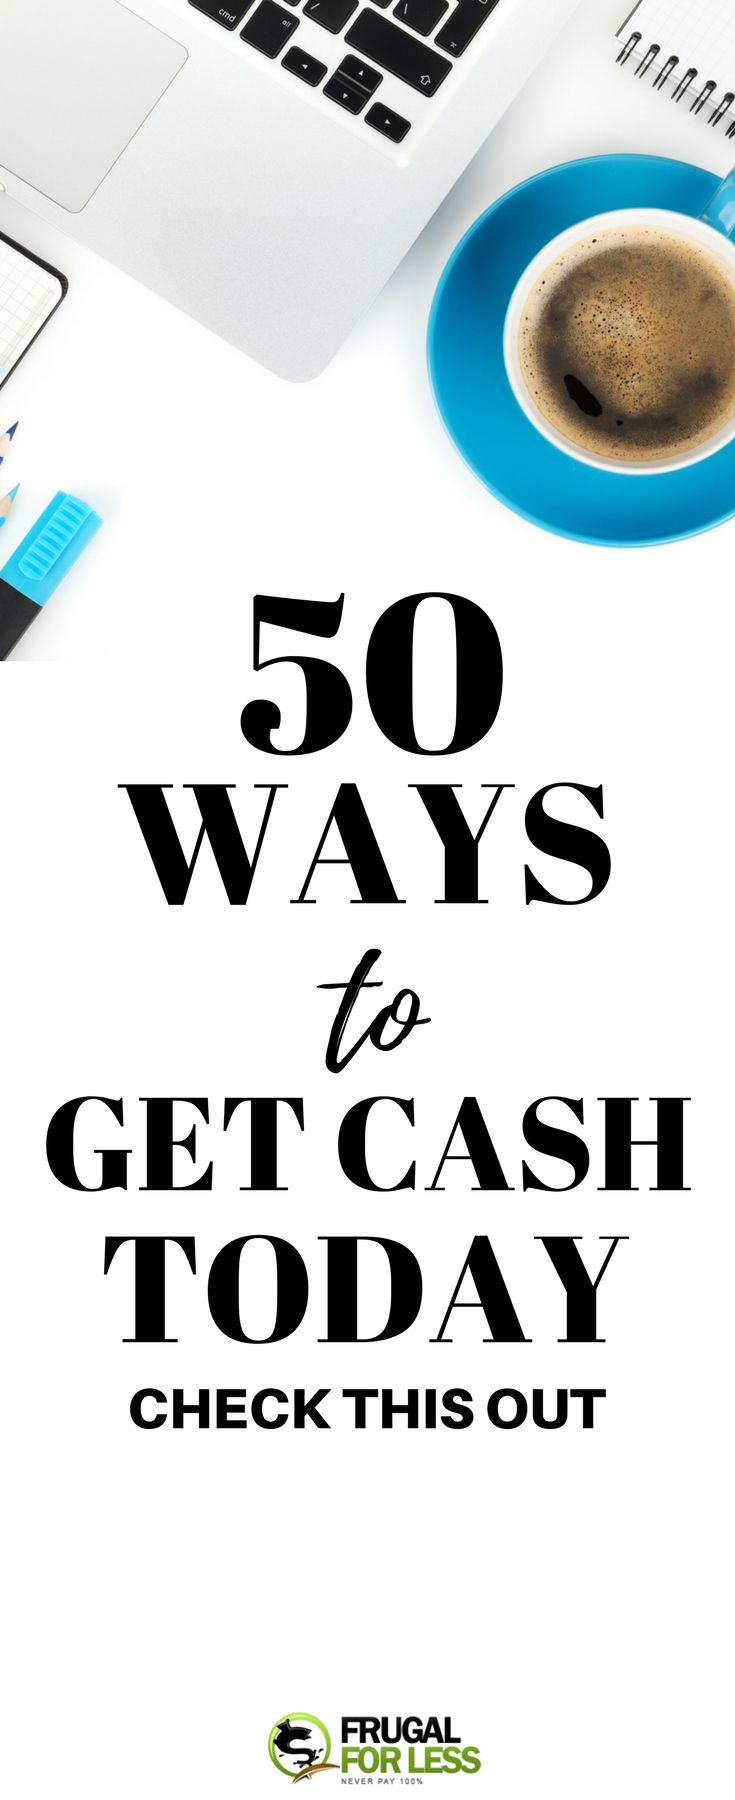 Looking for some extra cash fast? Check out these 50 ways to get cash today! FrugalforLess.com